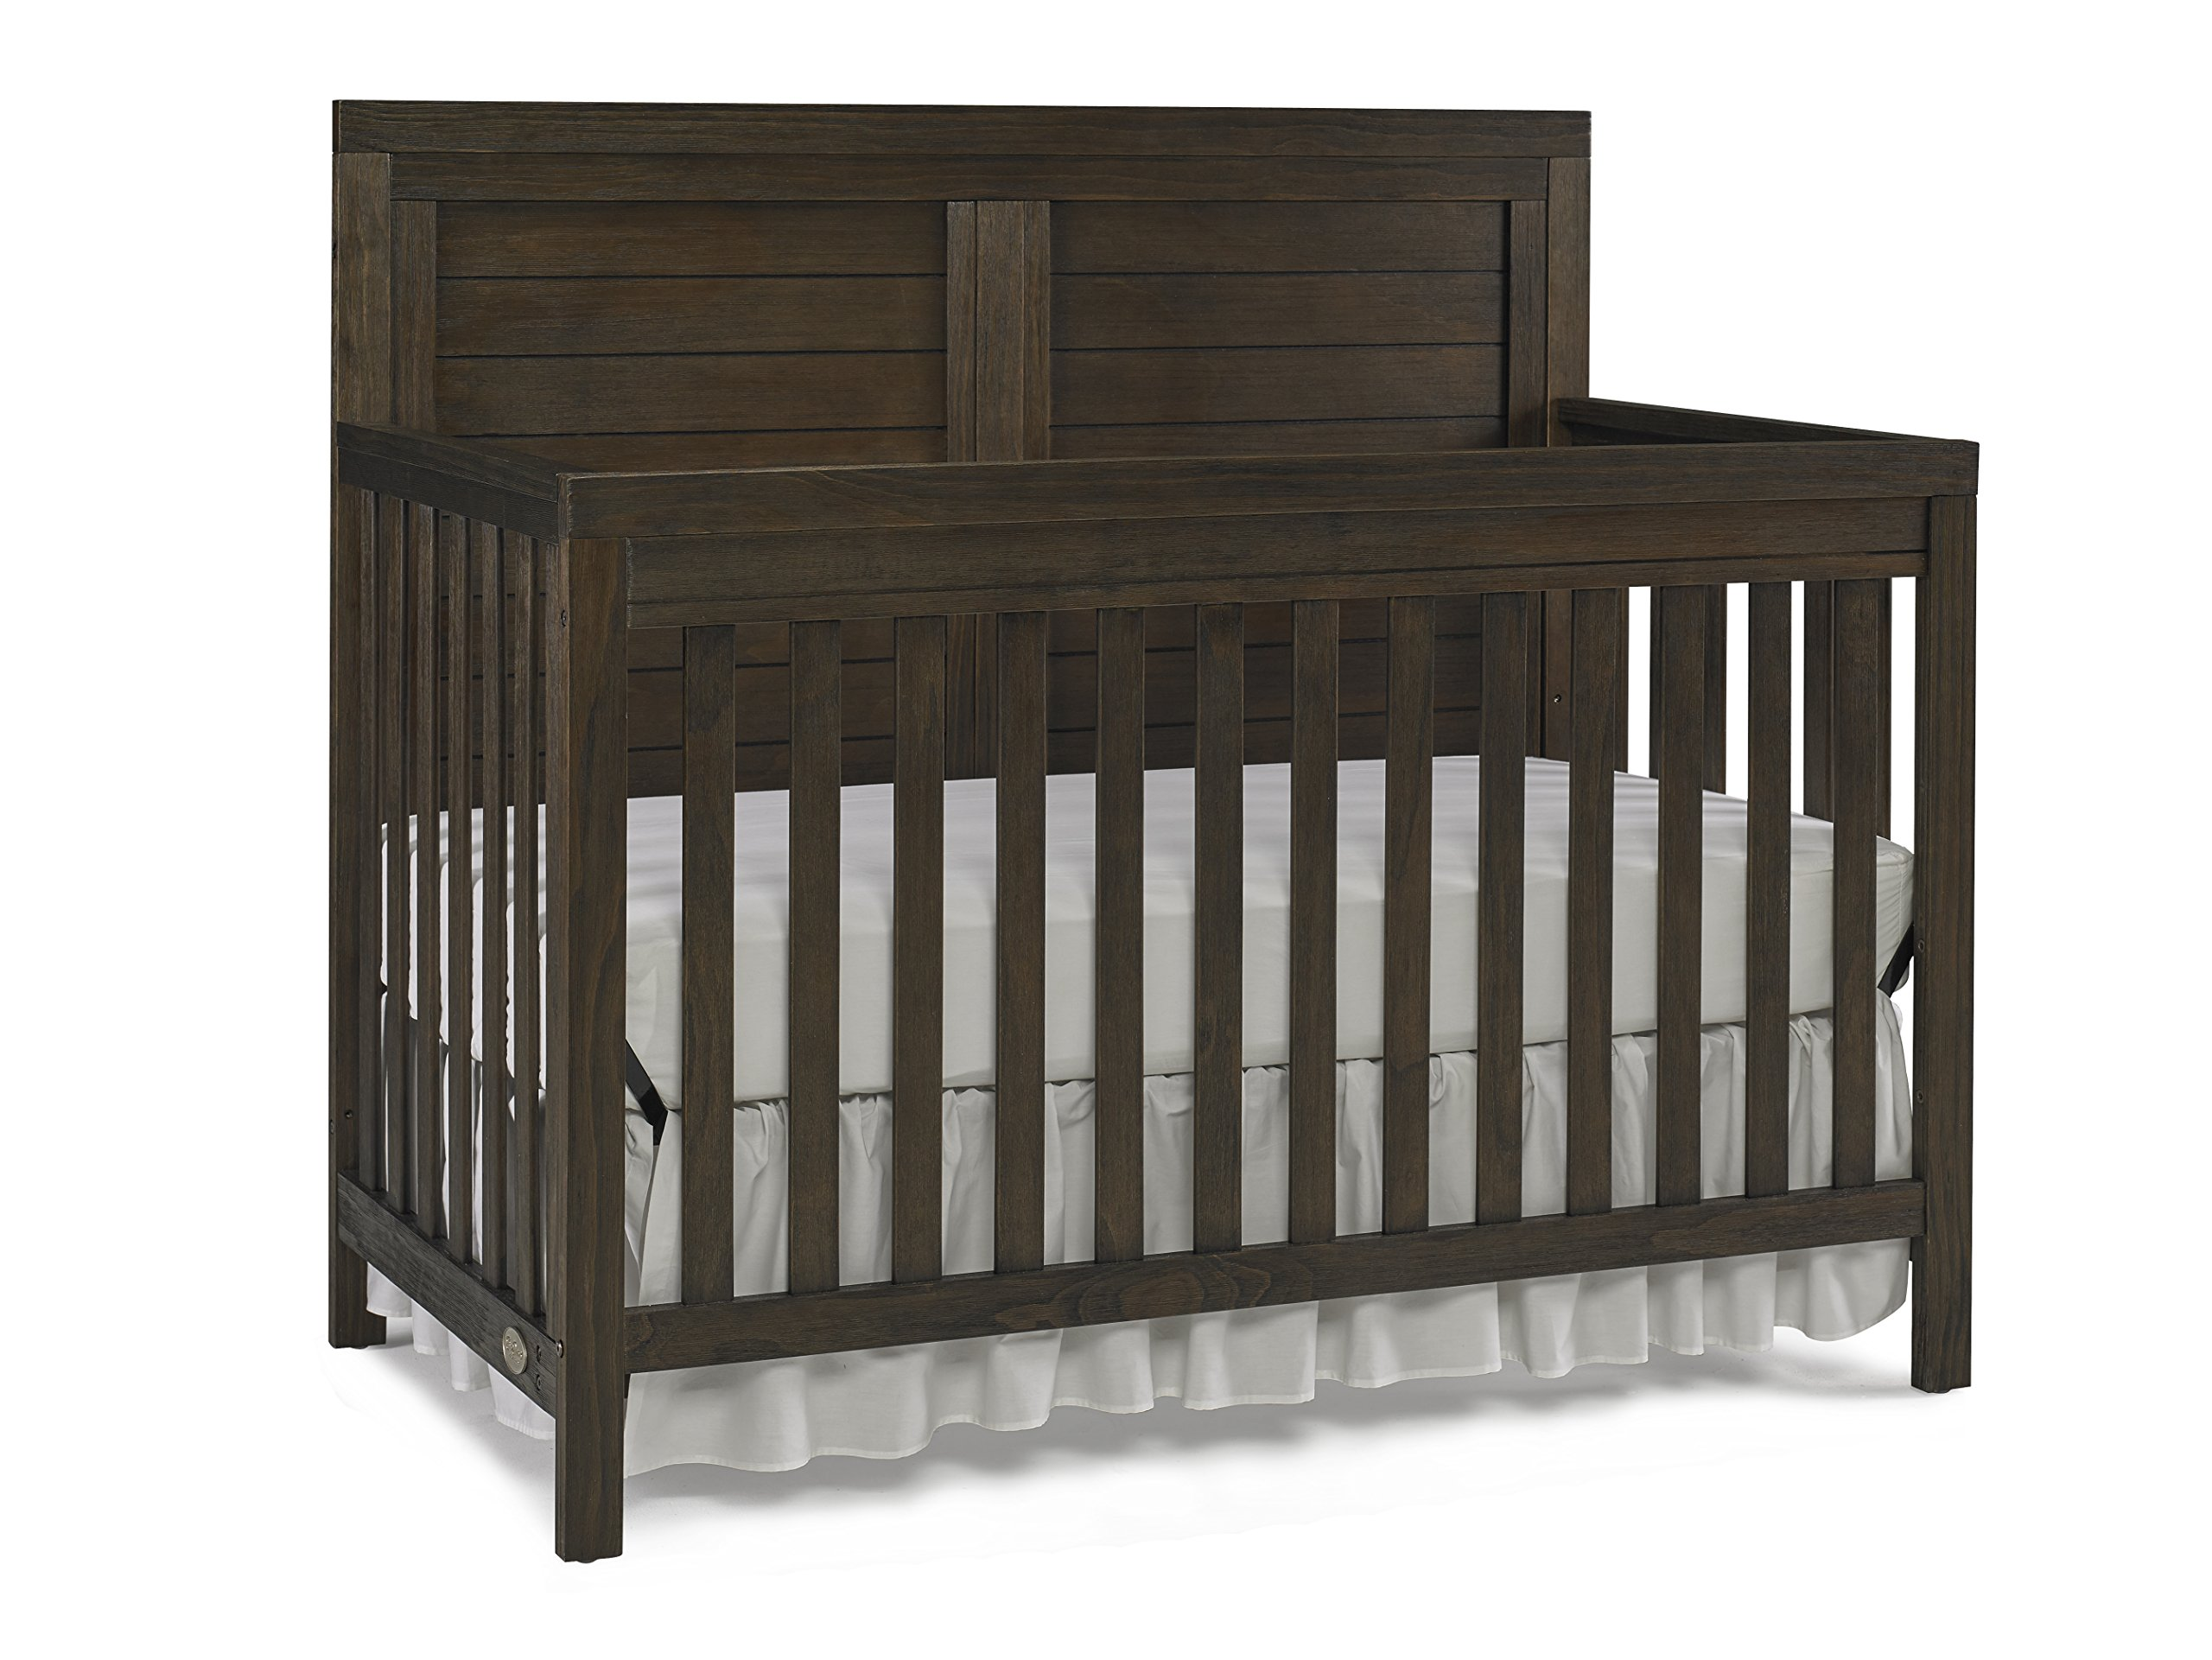 Ti Amo Castello 4 in 1 Convertible Crib, Wire Brushed Brown